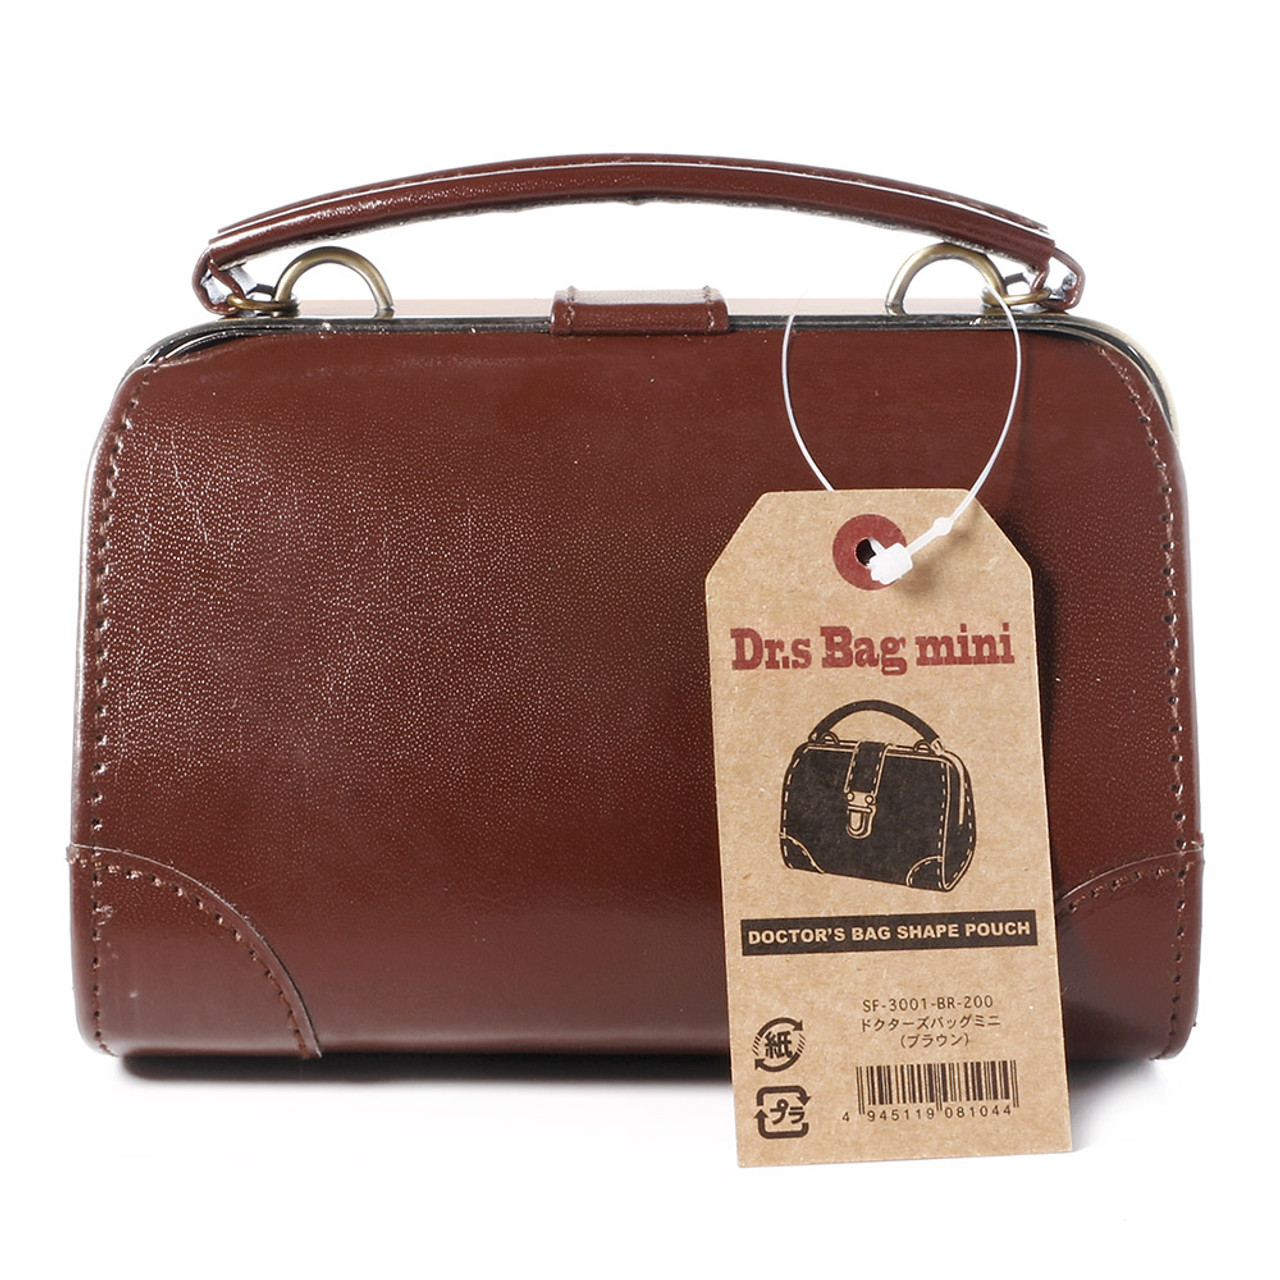 Seto Craft Motif Mini Doctor Bag Shape Pouch / Cosmetic Bag - Brown Color ( Back View )